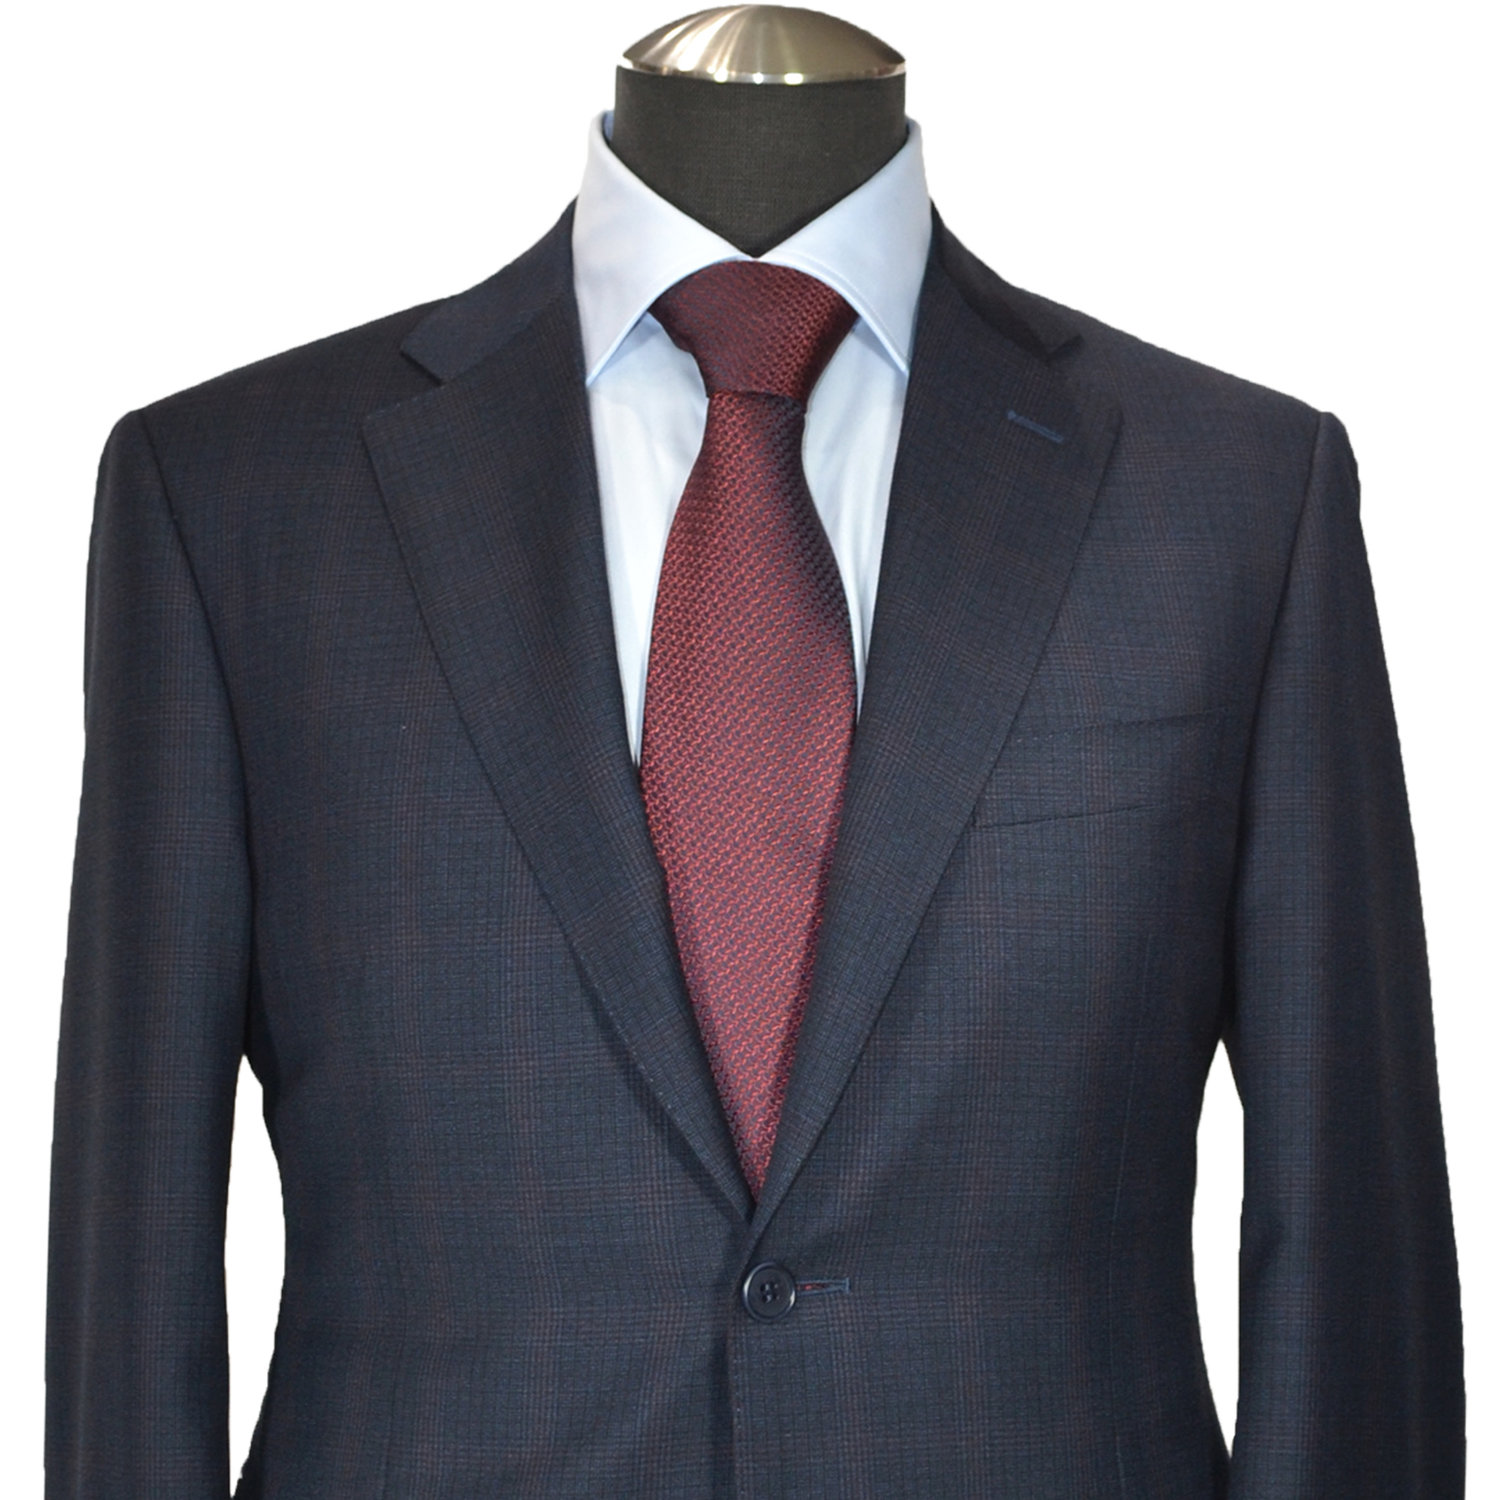 41f2ef48494072 Canali Suit-Siena -Pure Wool- Petrol Blue& Bordeaux Prince of Wales ...